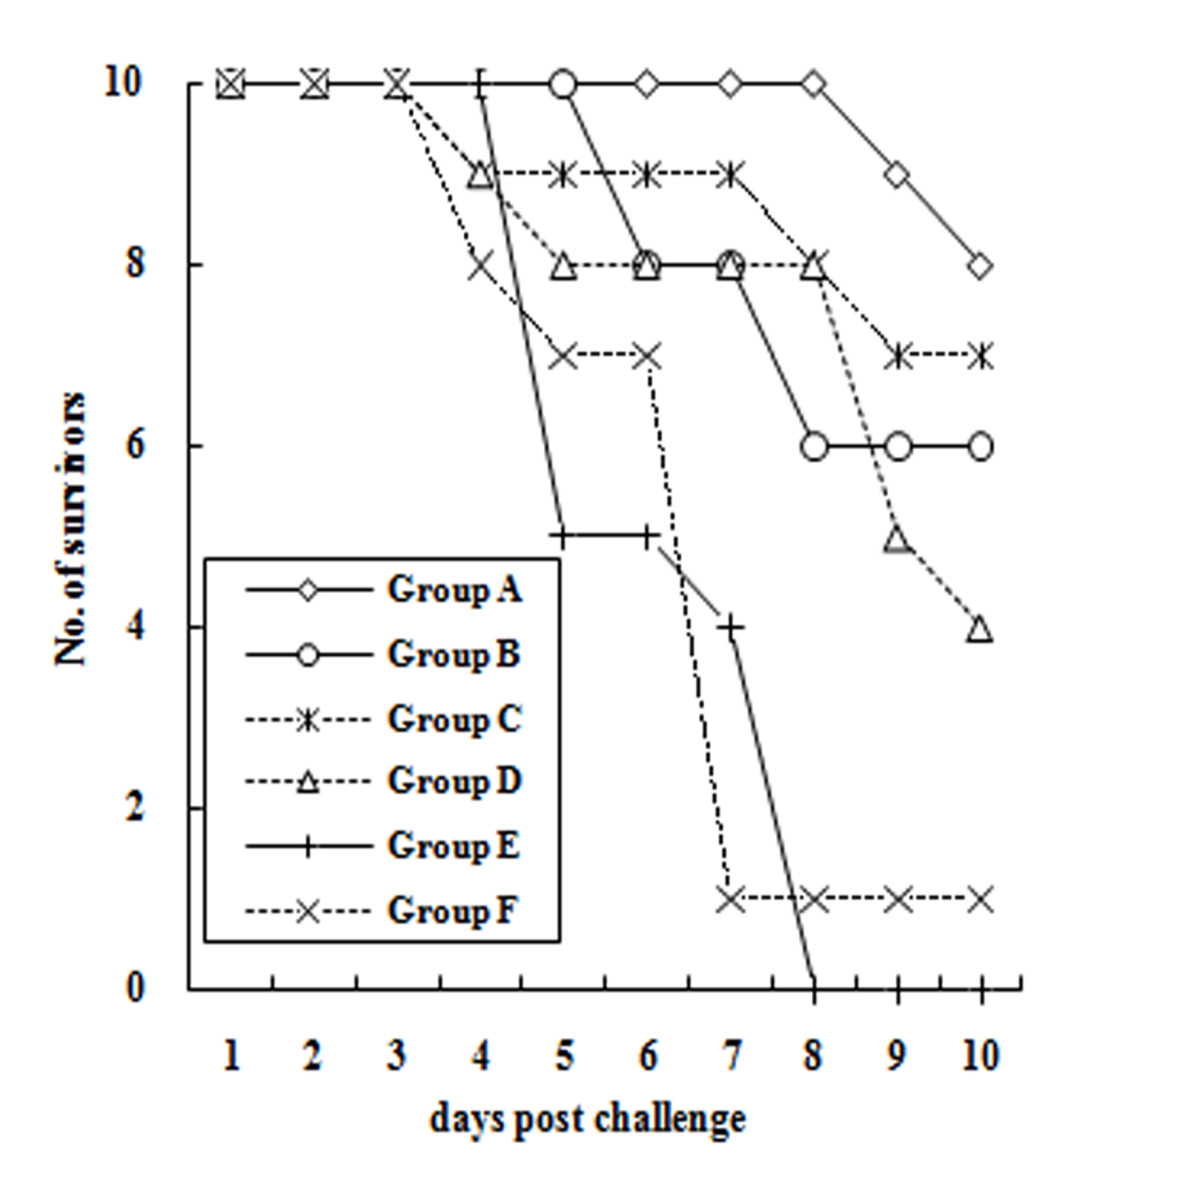 https://static-content.springer.com/image/art%3A10.1186%2F1297-9716-43-56/MediaObjects/13567_2012_Article_159_Fig7_HTML.jpg